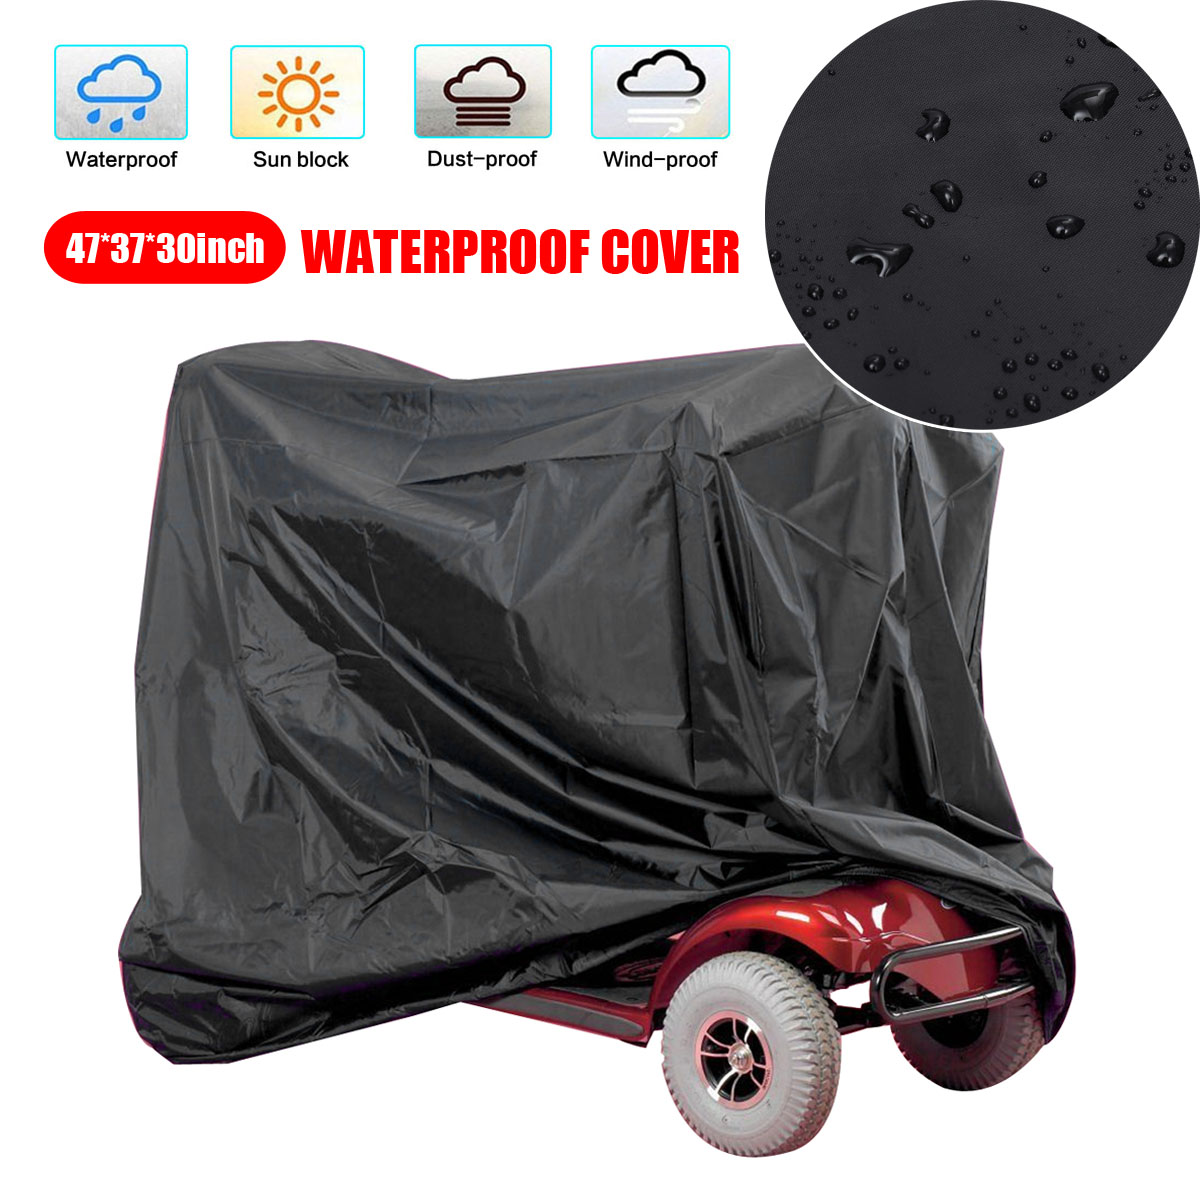 3 Size Black Silver Motorcycle Cover UV/Dust Protector Rain Dustproof Cover for Motorcycle Scooter ATV Lawn Mower Tractor3 Size Black Silver Motorcycle Cover UV/Dust Protector Rain Dustproof Cover for Motorcycle Scooter ATV Lawn Mower Tractor